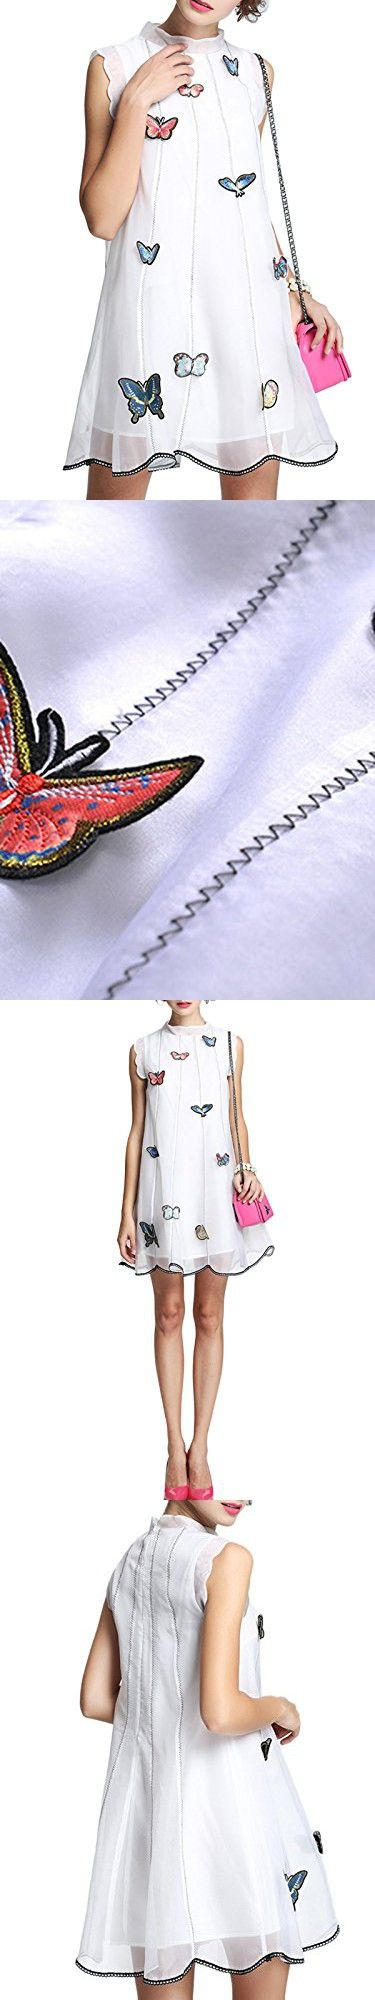 MissLook Women's Sleeveless Butterfly Appliqued Scalloped Shift Dress With Camis - White 10